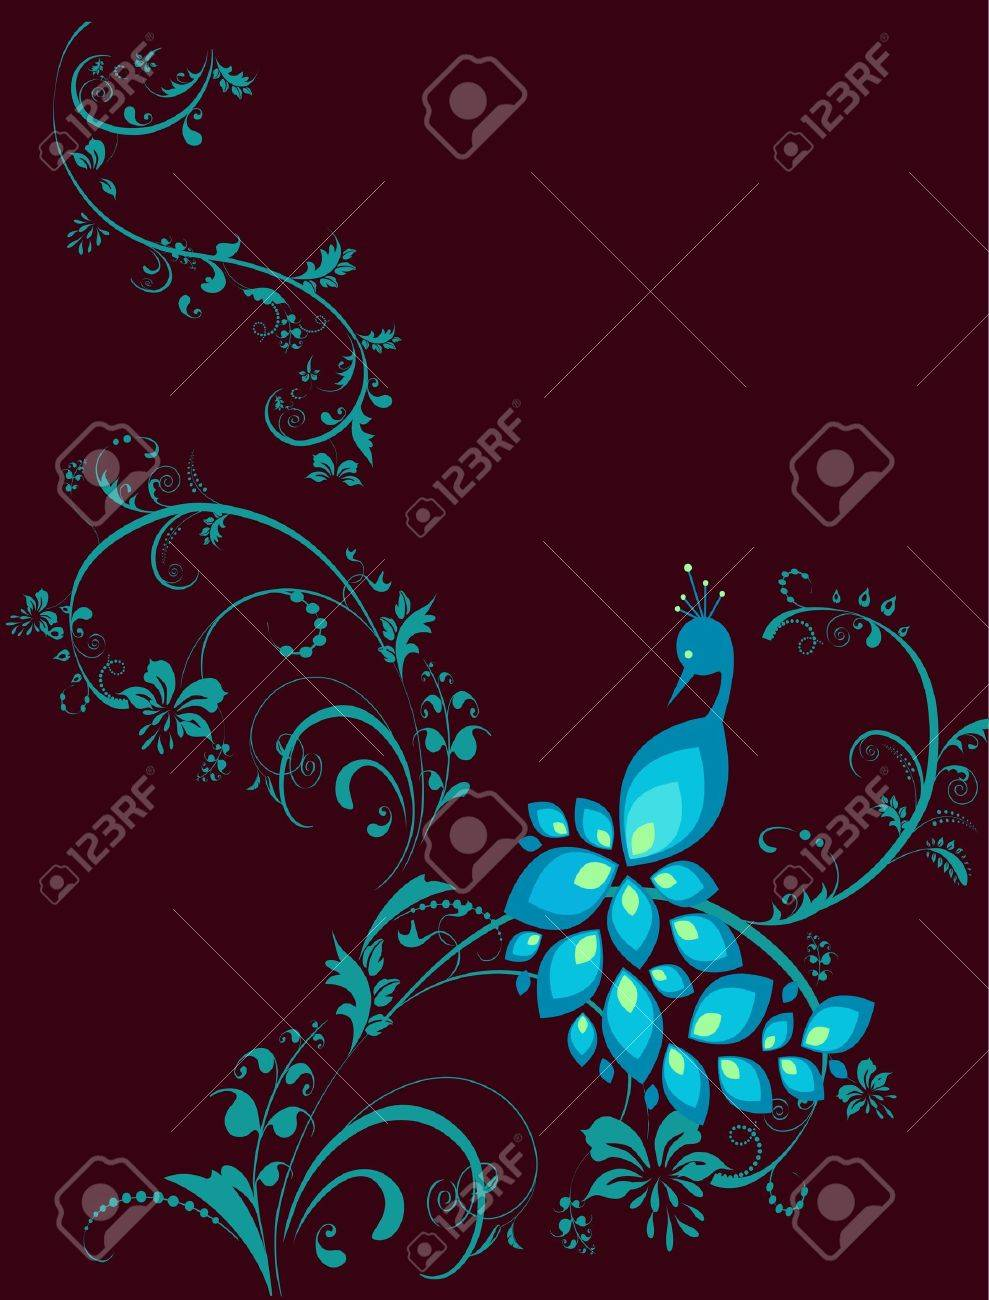 illustration of peacock with decarative plant Stock Vector - 10577883